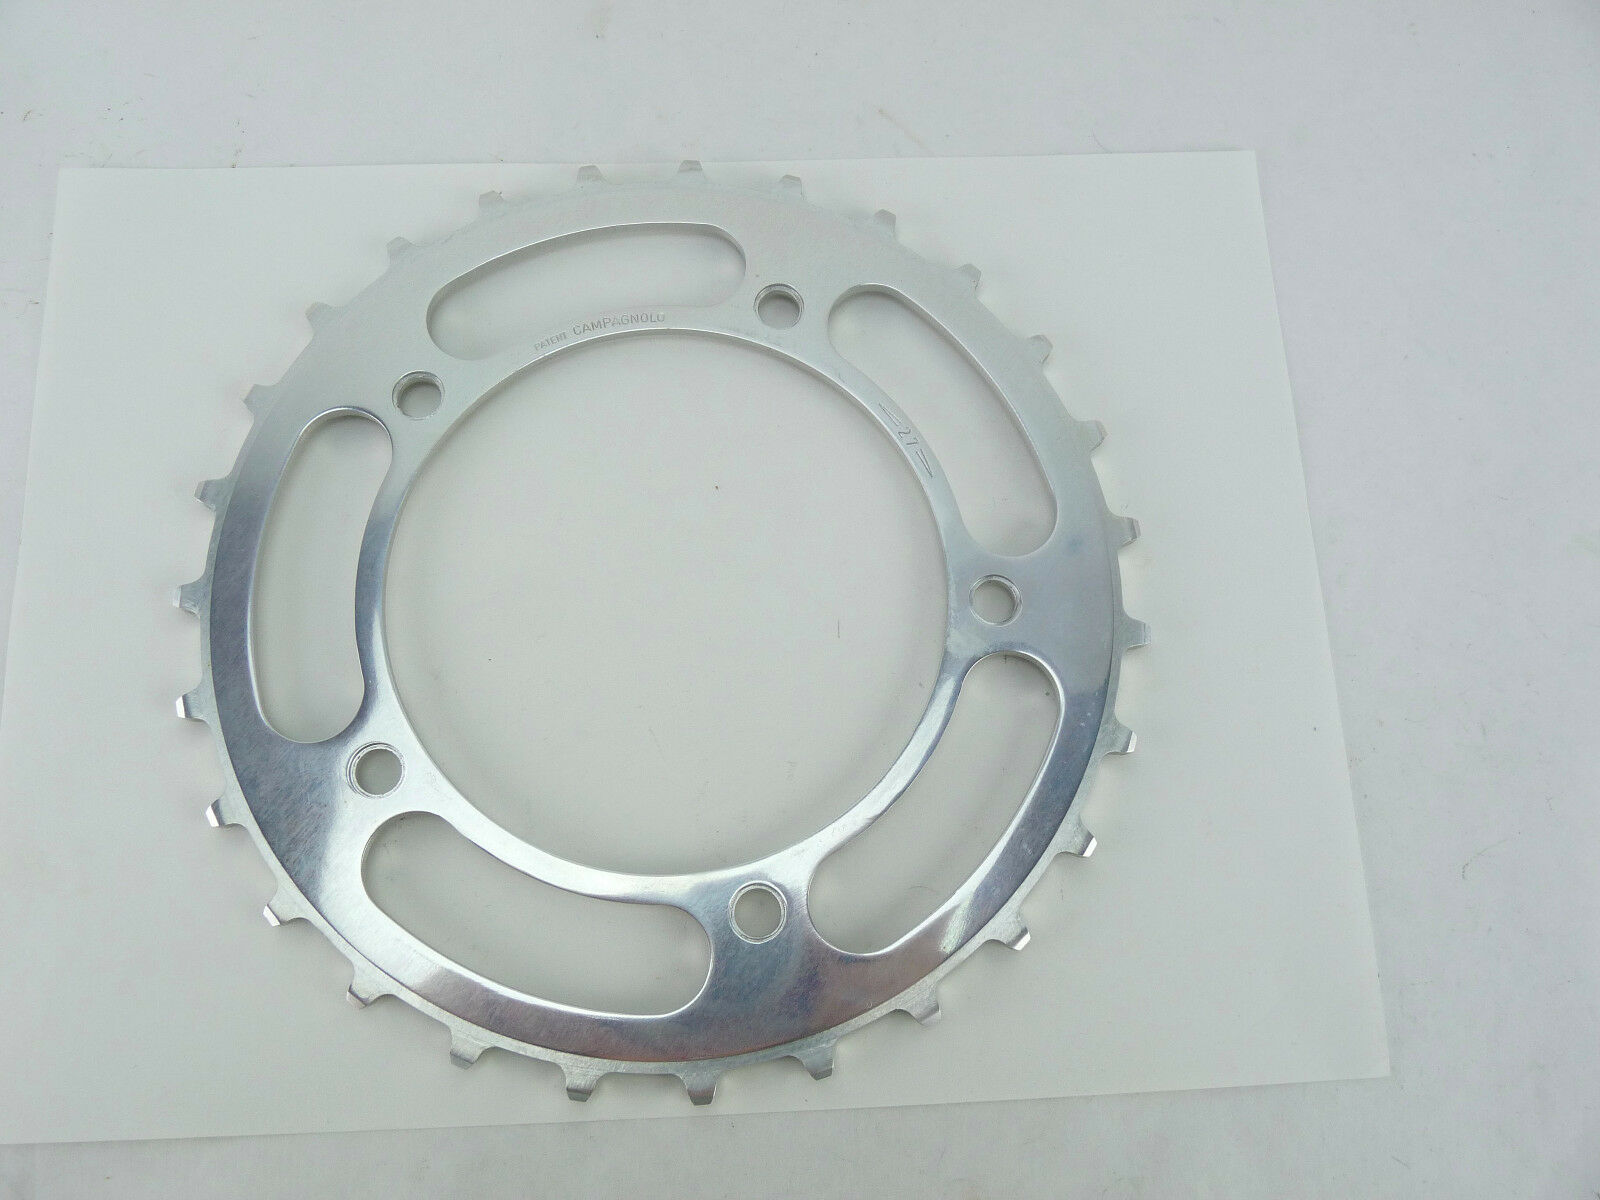 Campagnolo Record Track Chainring 27T PISTA 316 bicicletta 151BCD Skiptooth NOS